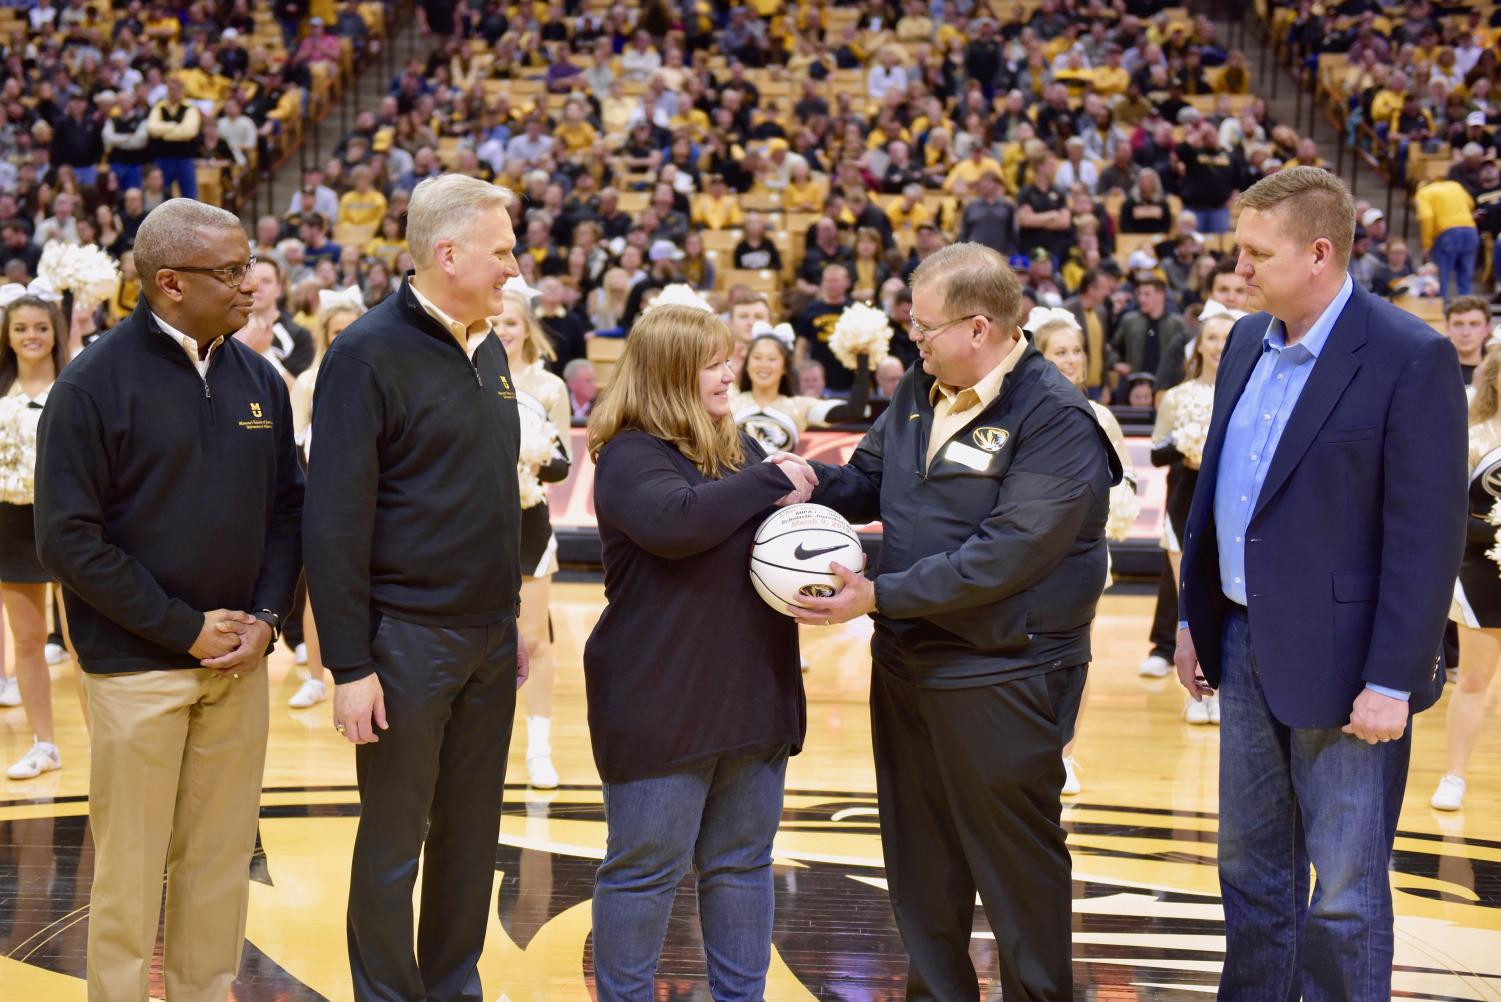 Mizzou+Chancellor+Alexander+Cartwright+presents+a+game+ball+to+Christina+Geabhart%2C+president+of+MIPA+Missouri+Interscholastic+Press+Association%2C+during+the+Mizzou+Men%27s+Basketball+game+Saturday+at+Mizzou+Arena.+Nearly+200+journalism+and+yearbook+advisers+and+their+students+were+at+the+game+for+Scholastic+Journalism+Day%2C+which+celebrated+high+school+journalism+programs+across+Missouri.+Geabhart+is+the+journalism+teacher+at+Oak+Park+High+School+in+North+Kansas+City+Schools.%0A%0ALeft+to+right%3A+Associate+Professor+Ron+Kelley%2C+co-executive+director+of+MIPA%3B+Missouri+School+of+Journalism+Dean+David+Kurpius%3B+Geabhart%3B+Cartwright%3B+and+Keith+Hughey%2C+an+executive+with+Walsworth+Yearbooks.+%23MissouriMethod+%23MizzouMade+National+Scholastic+Press+Association+Journalism+Education+Association